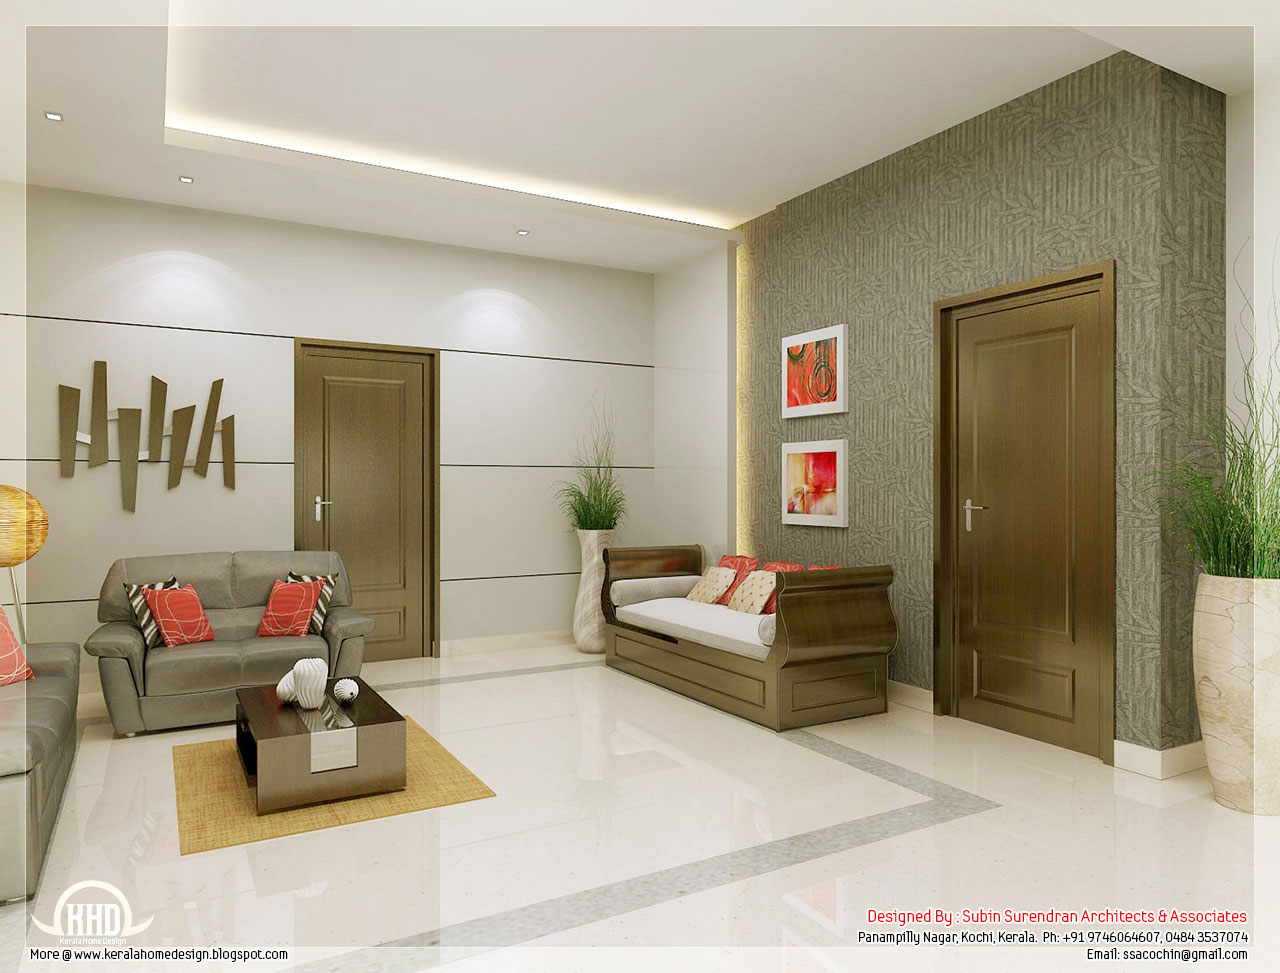 Awesome 3d interior renderings kerala home design and for Simple house interior design ideas